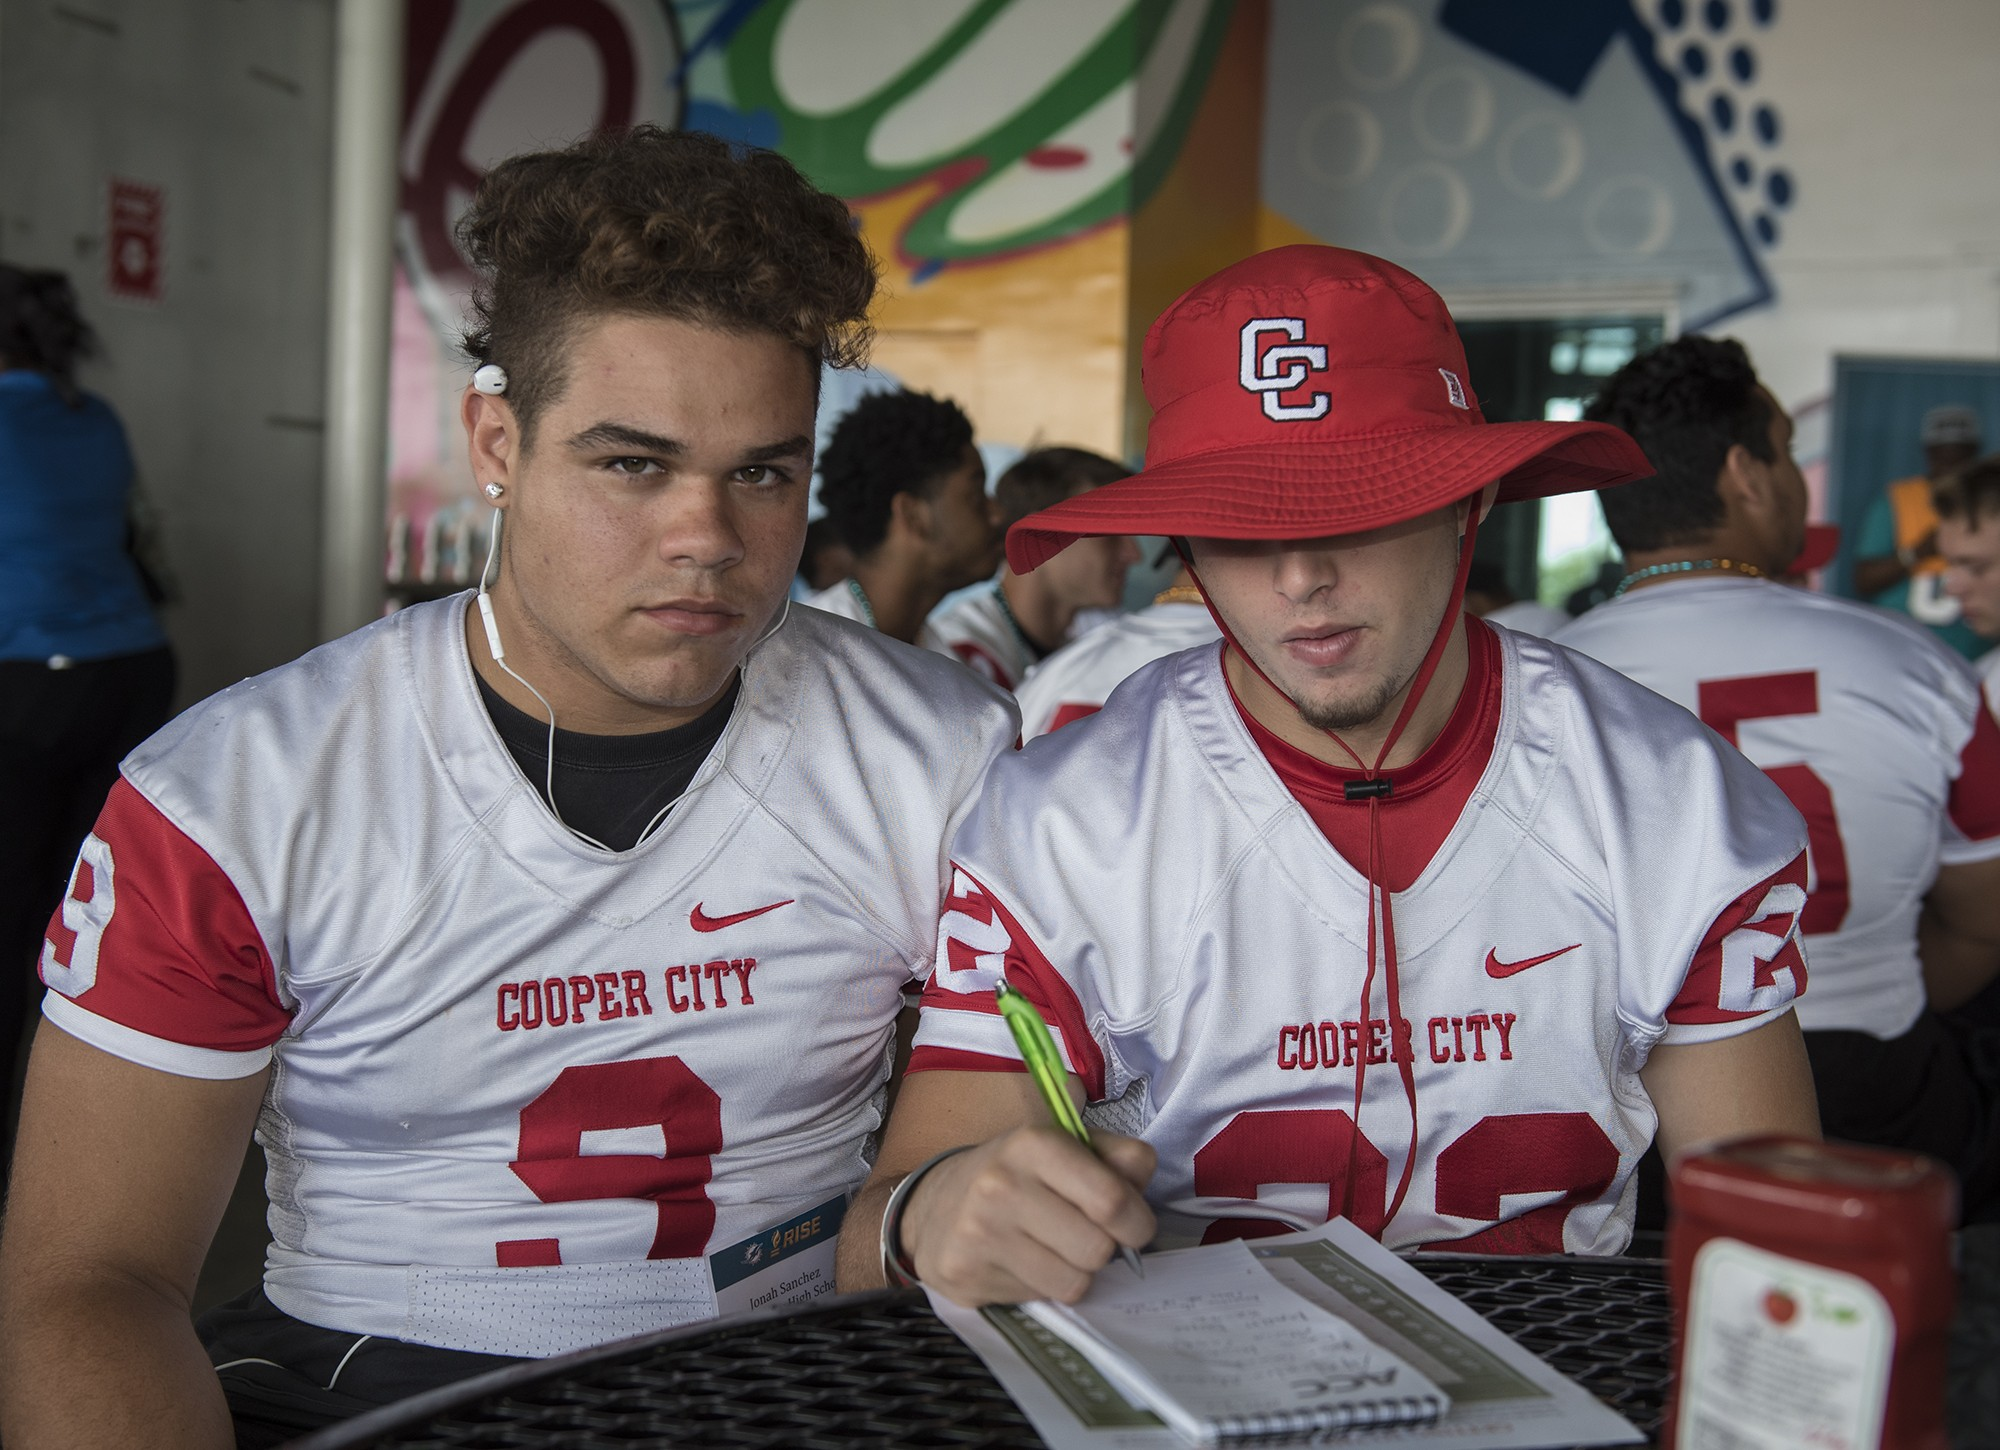 Cooper City FB Jonah Sanchez and WR Andrew Hausdorff both class of 2018 enjoy the RISE Tailgate party prior to the New Jets vs Miami Dolphins NFL football game on Sunday, Oct. 22, 2017, in Miami Gardens, Fla. (Donald Edgar/El Latino Digital)